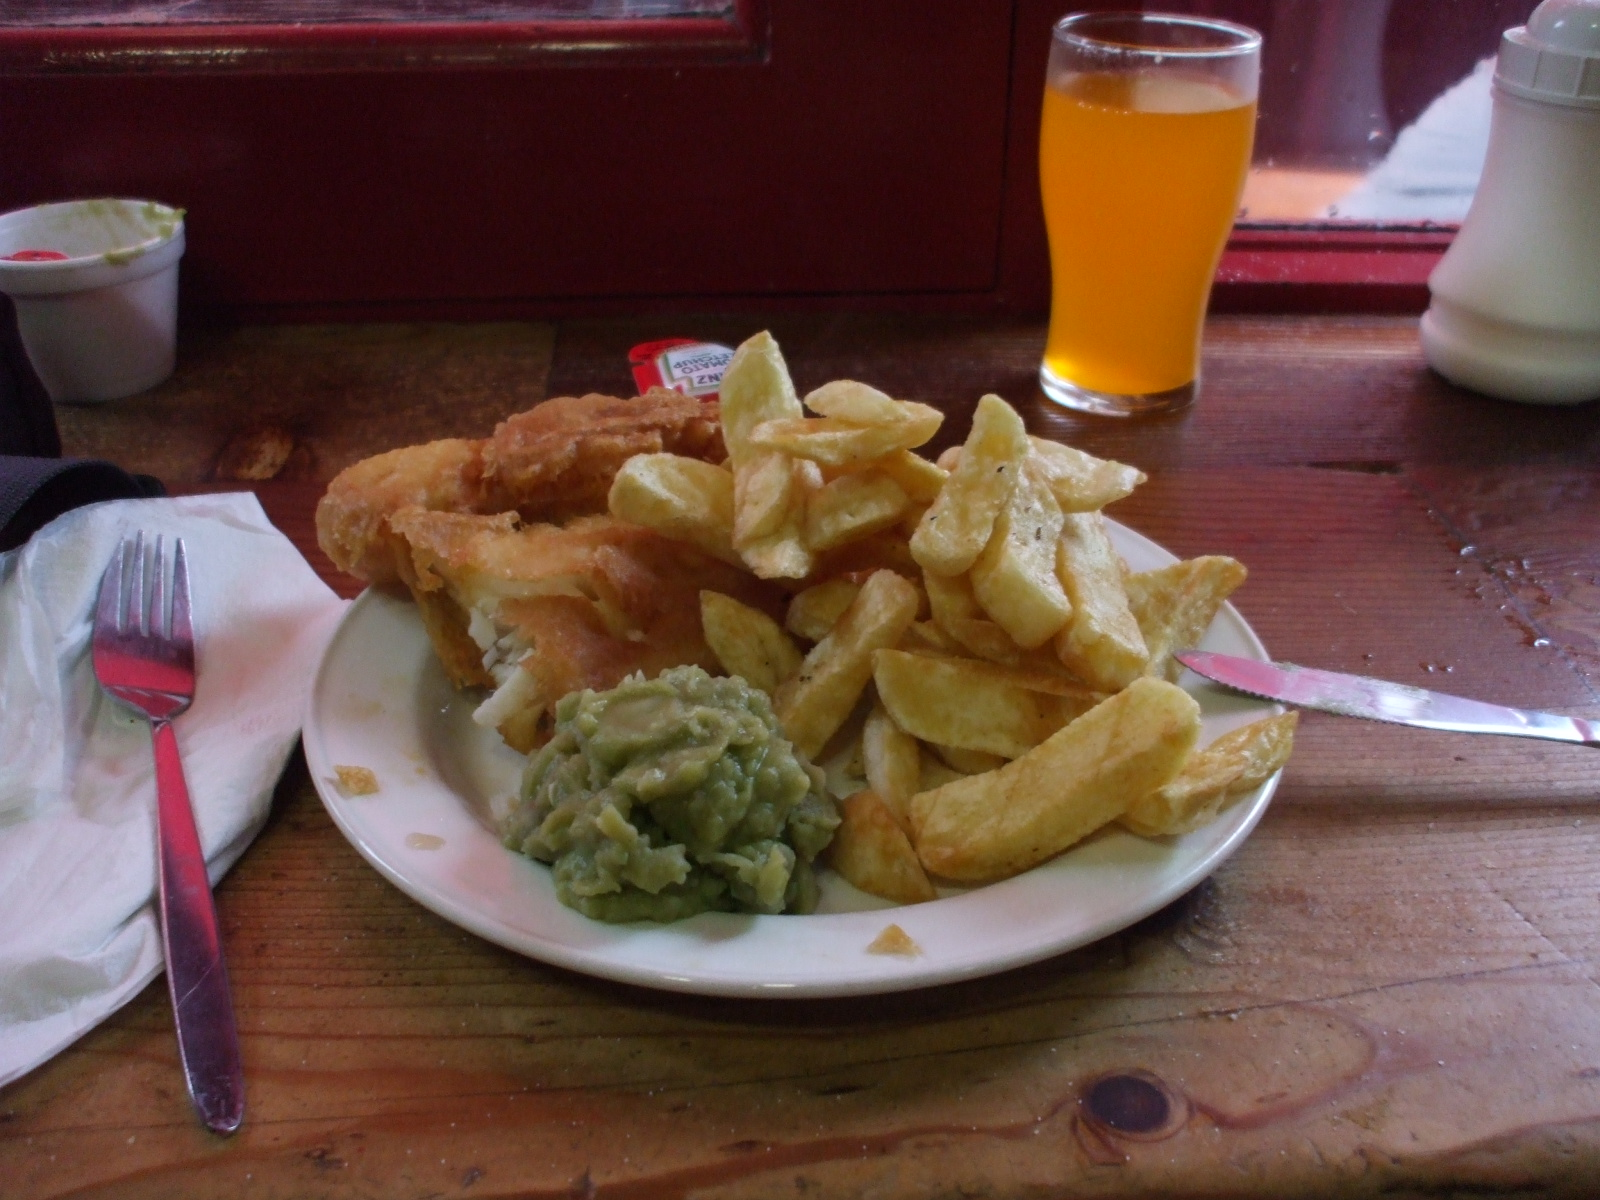 Now that's fish'n'chips.